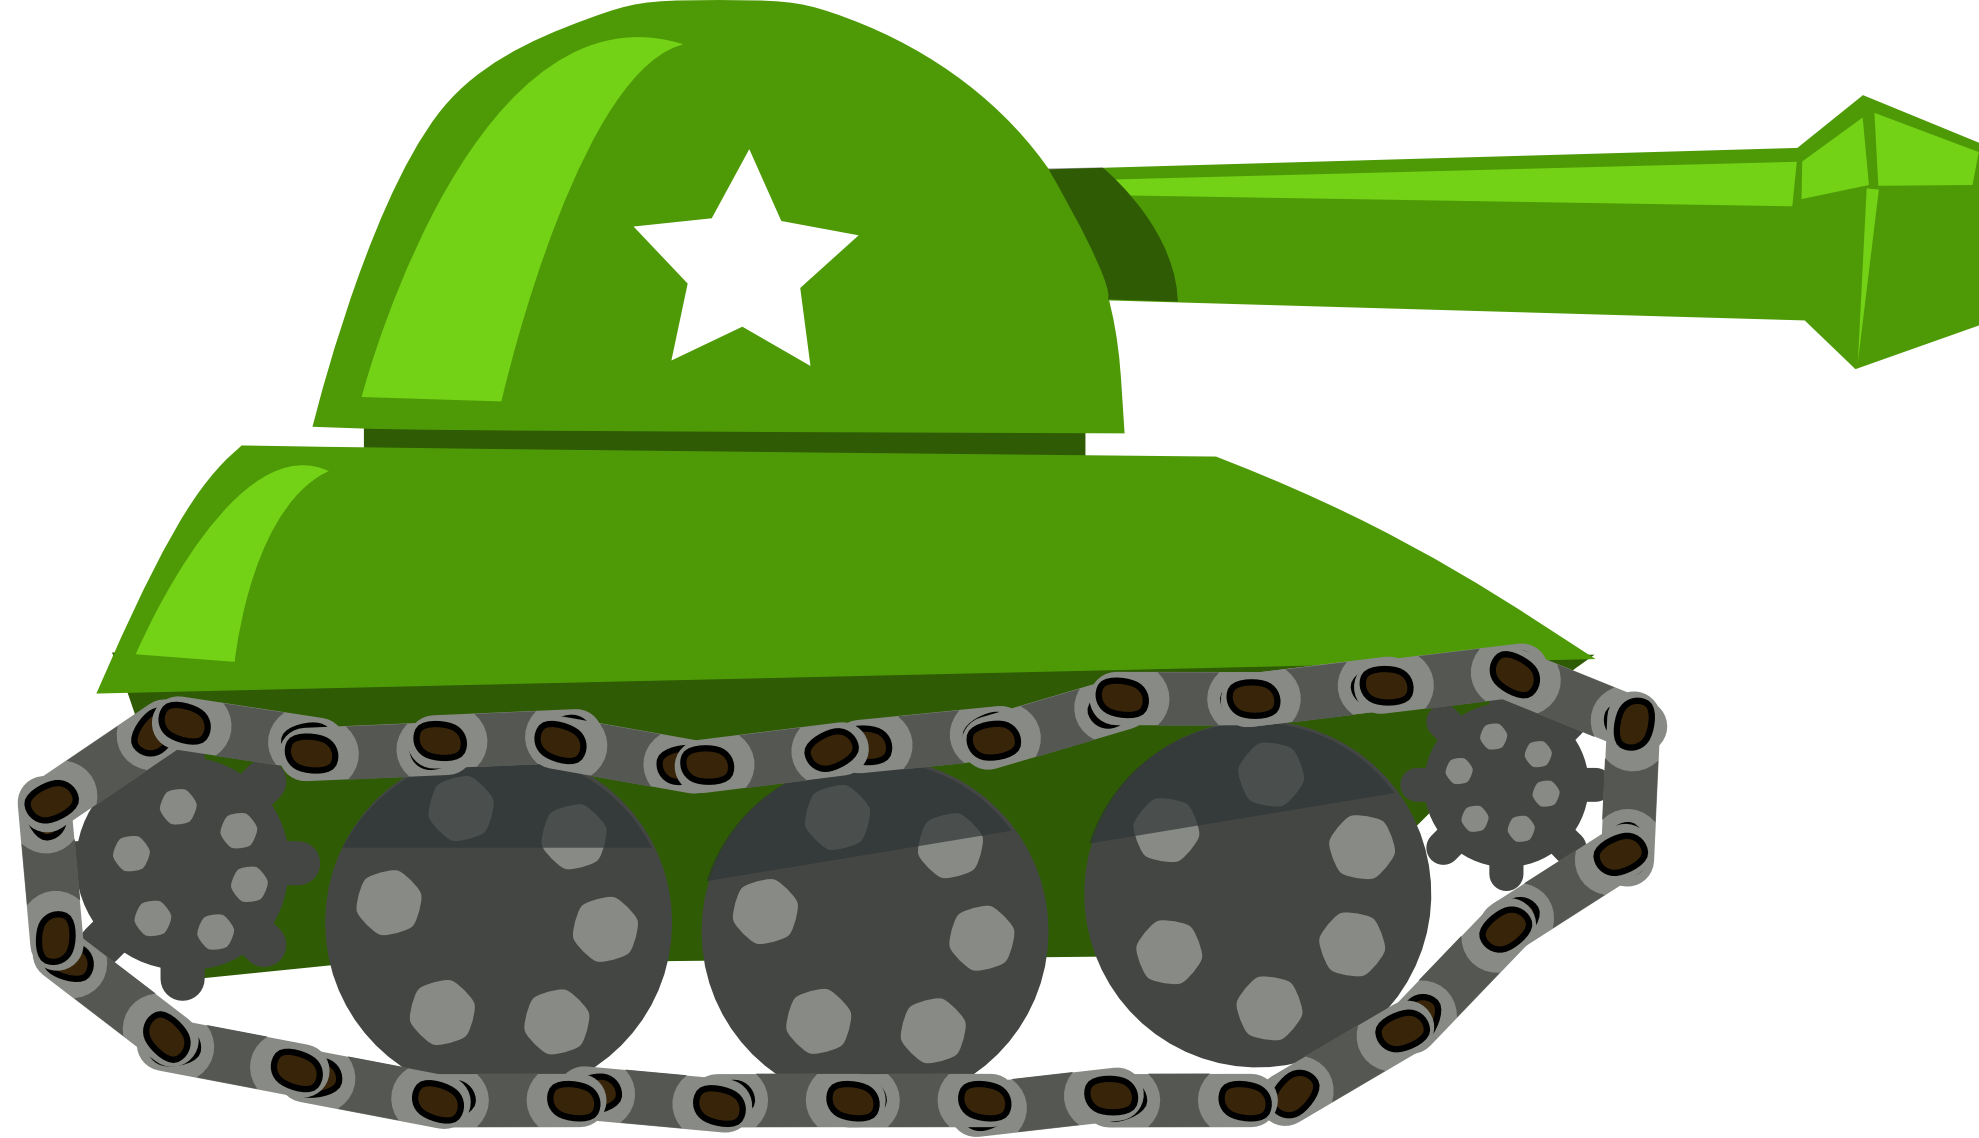 picture royalty free stock Army tank clipart. Panda free images armytankclipart.